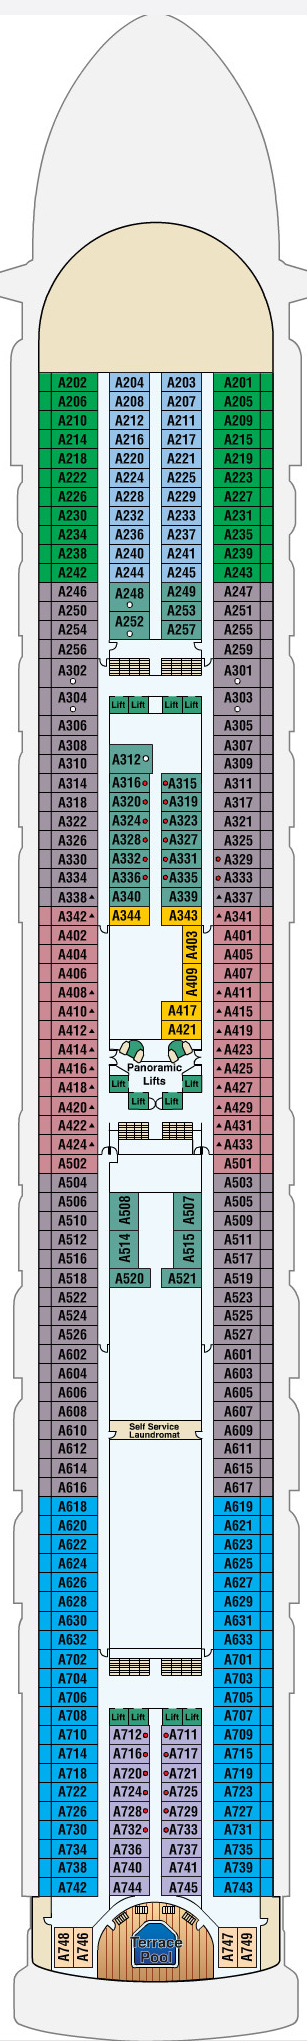 Star Princess Aloha Deck 12 layout